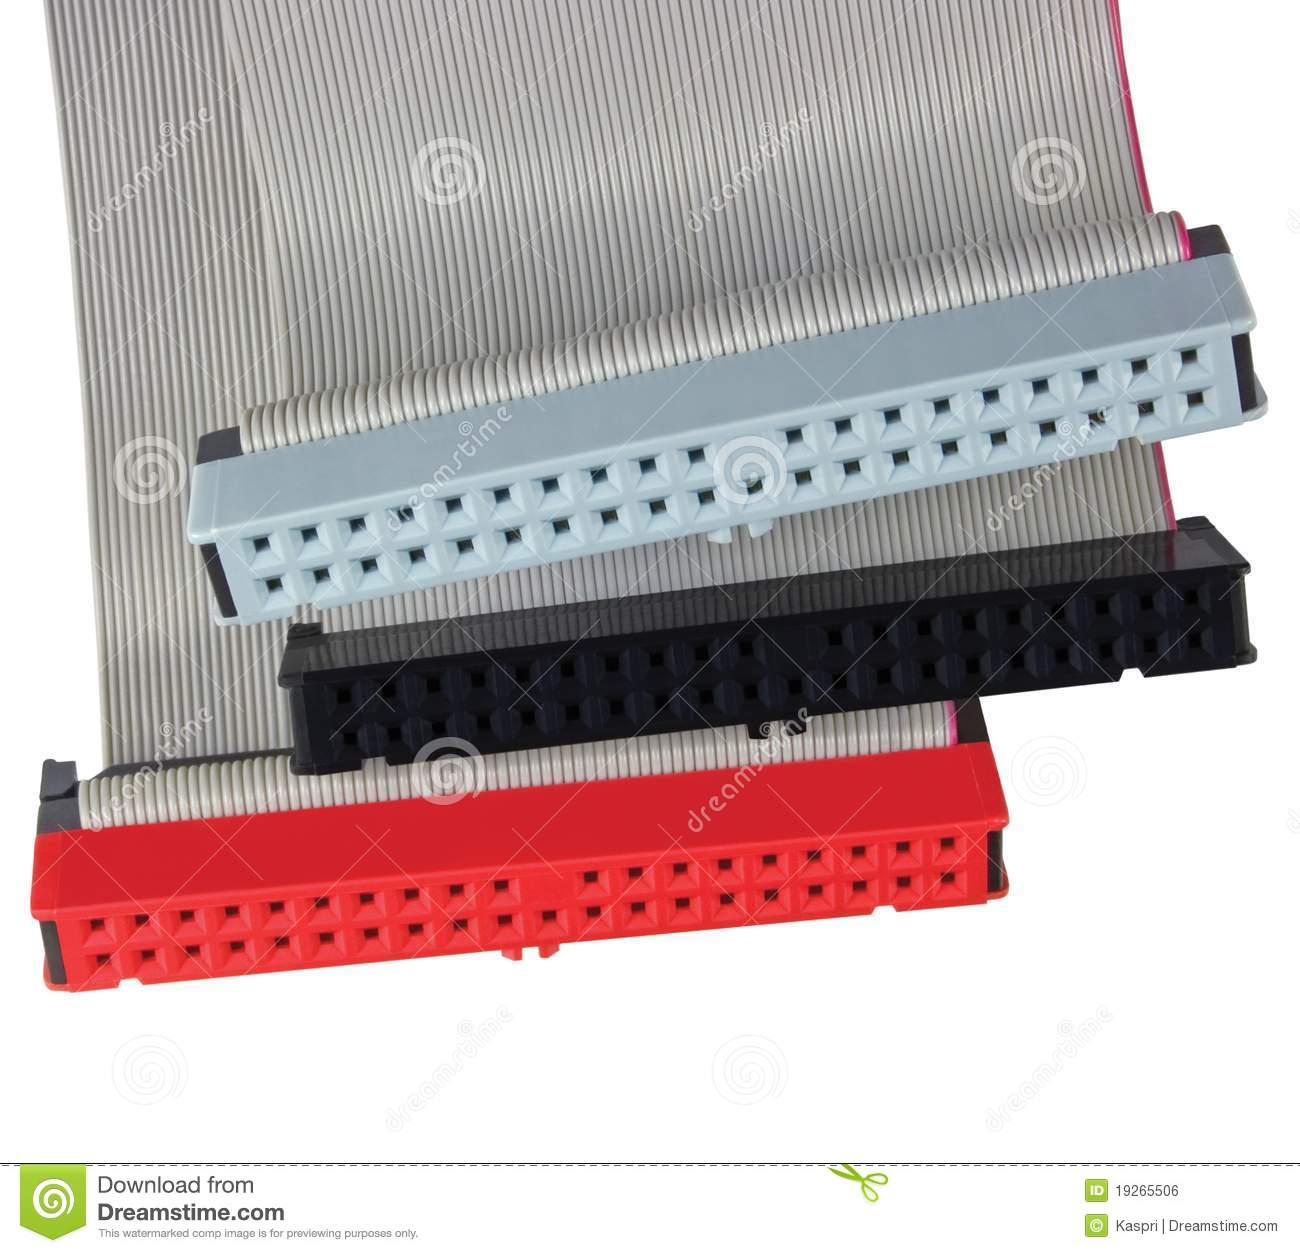 Electronic Ribbon Cable Connectors : Connectors ribbon cables for computer hard drive royalty